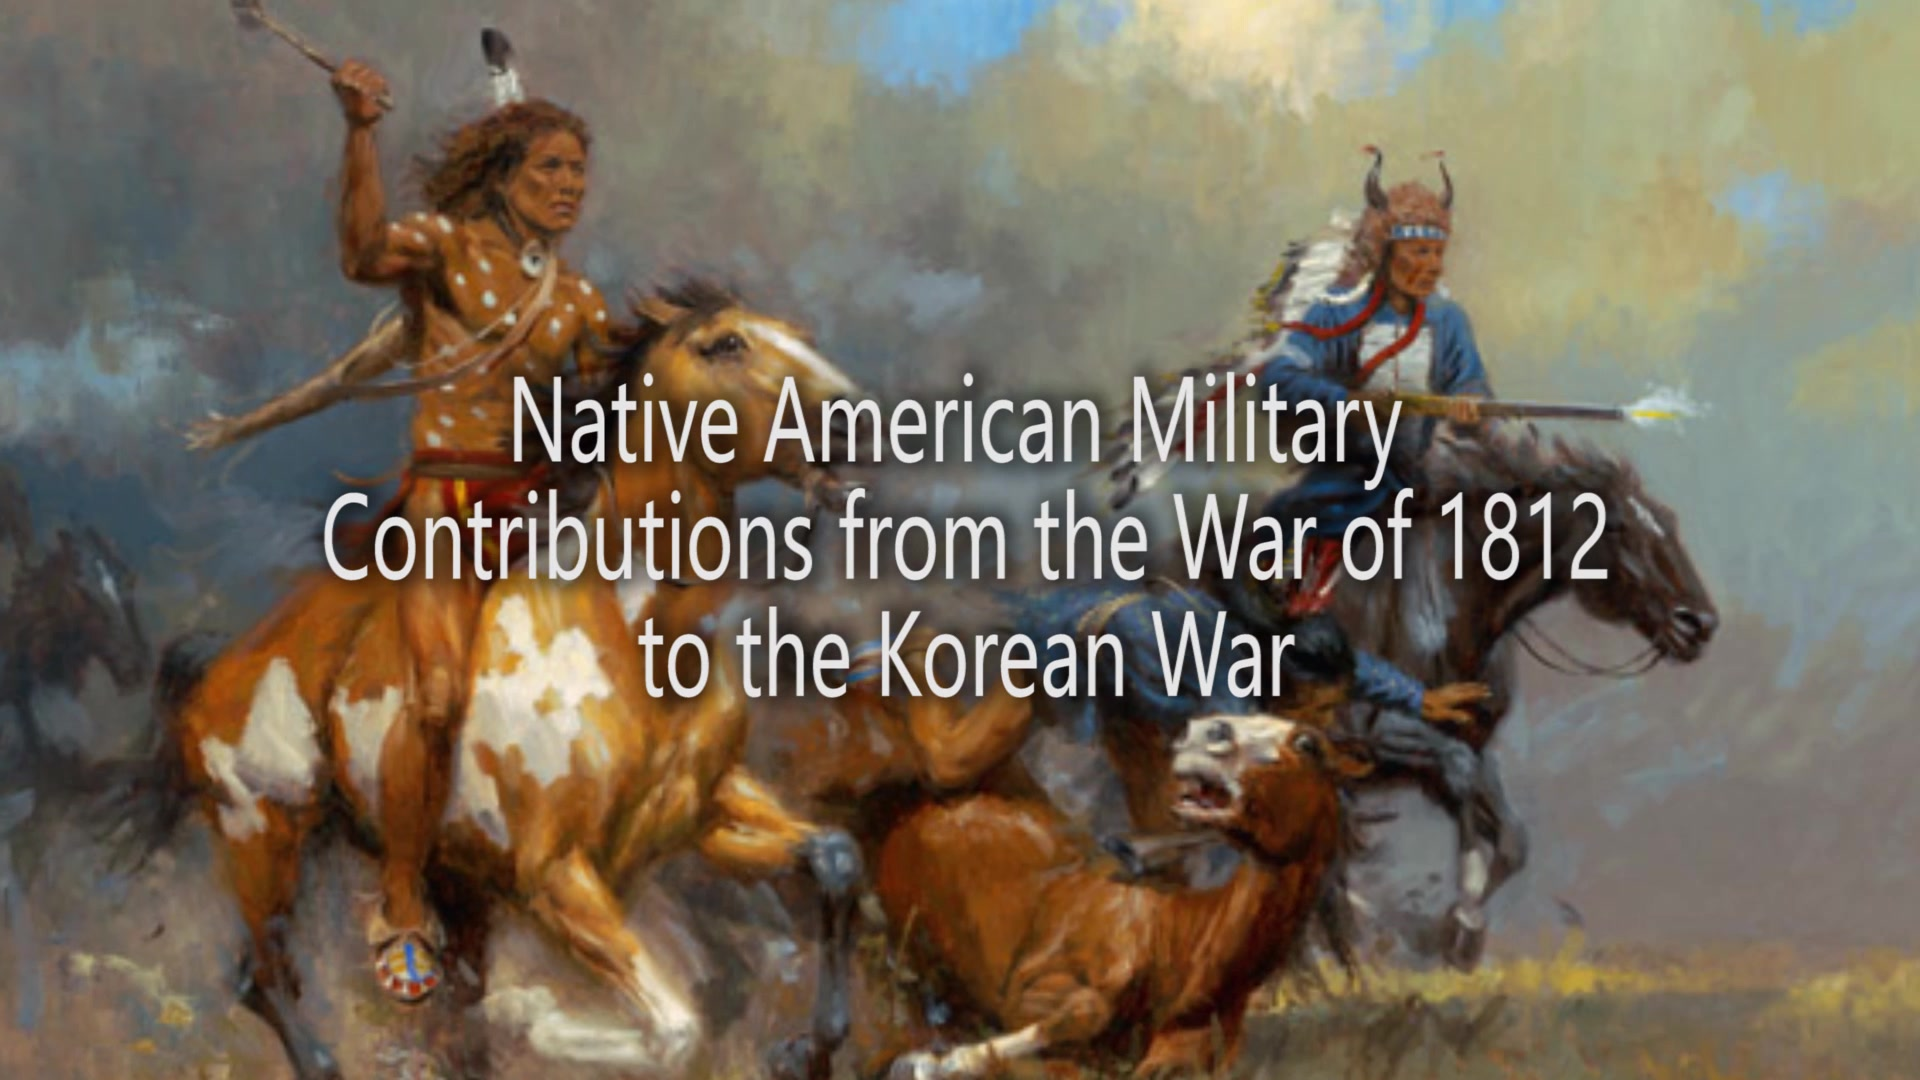 Native Americans have participated with distinction in United States military actions for more than 200 years. Many tribes were involved in the War of 1812, and also fought for both sides as auxiliary troops in the Civil War. It is estimated that more than 12,000 American Indians served in the United States military in World War I. The outbreak of World War II brought American Indians warriors back to the battlefield in defense of their homeland. More than 44,000 American Indians, out of a total Native American population of less than 350,000, served with distinction between 1941 and 1945 in both European and Pacific theaters of war. Native American men and women on the home front also showed an intense desire to serve their country, and were an integral part of the war effort. More than 40,000 Indian people left their reservations to work in ordnance depots, factories, and other war industries. Battle-experienced American Indian troops from World War II were joined by newly recruited Native Americans to fight Communist aggression during the Korean War. Today, Native Americans continue to serve and carry on their centuries-old warrior tradition — serving with pride, courage and distinction. (U.S. Army Reserve video by Staff Sgt. Rodney Roldan)